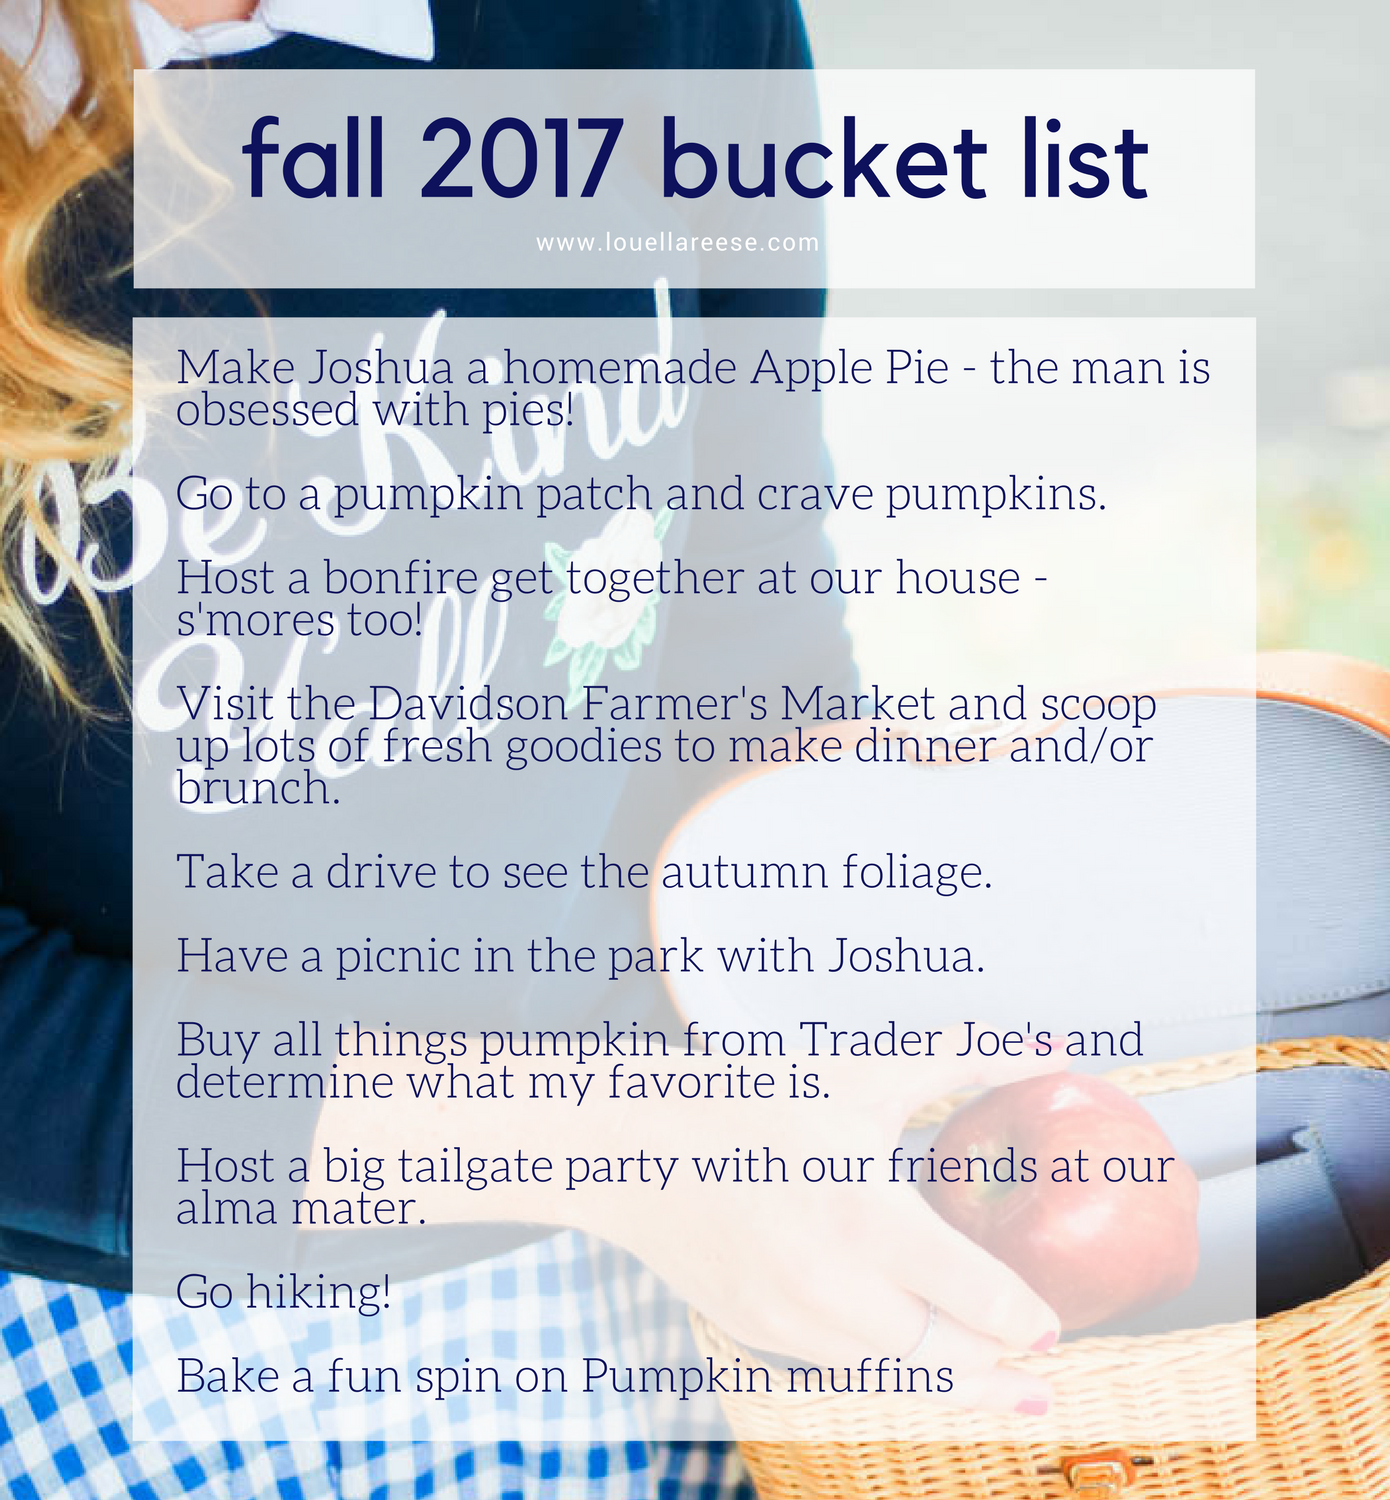 Fall 2017 Bucket List // What to do this Fall // Louella Reese Life & Style Blog